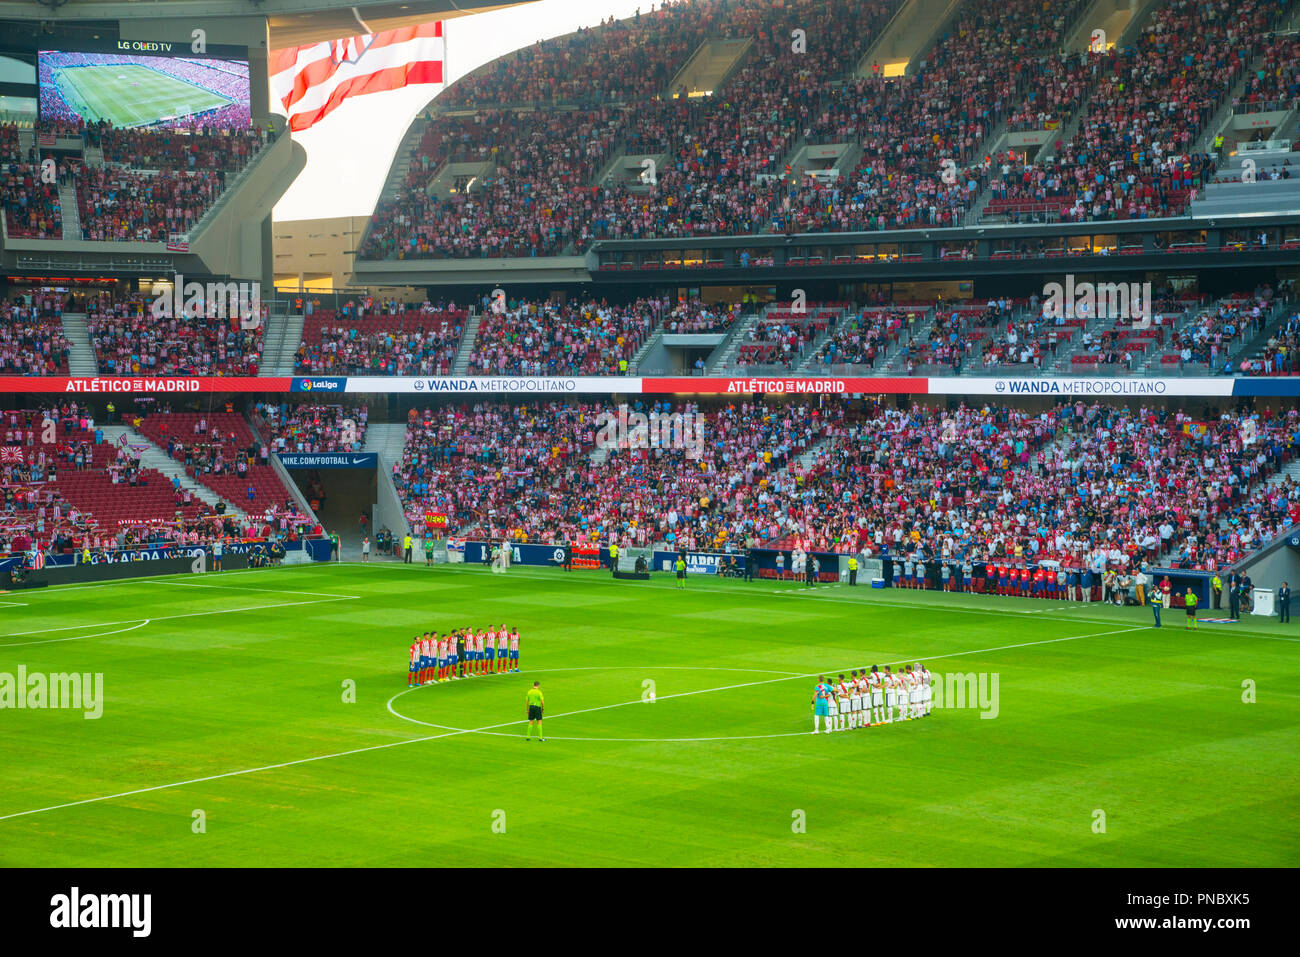 Moment de silence avant un match de football. Wanda stade Metropolitano, Madrid, Espagne. Photo Stock